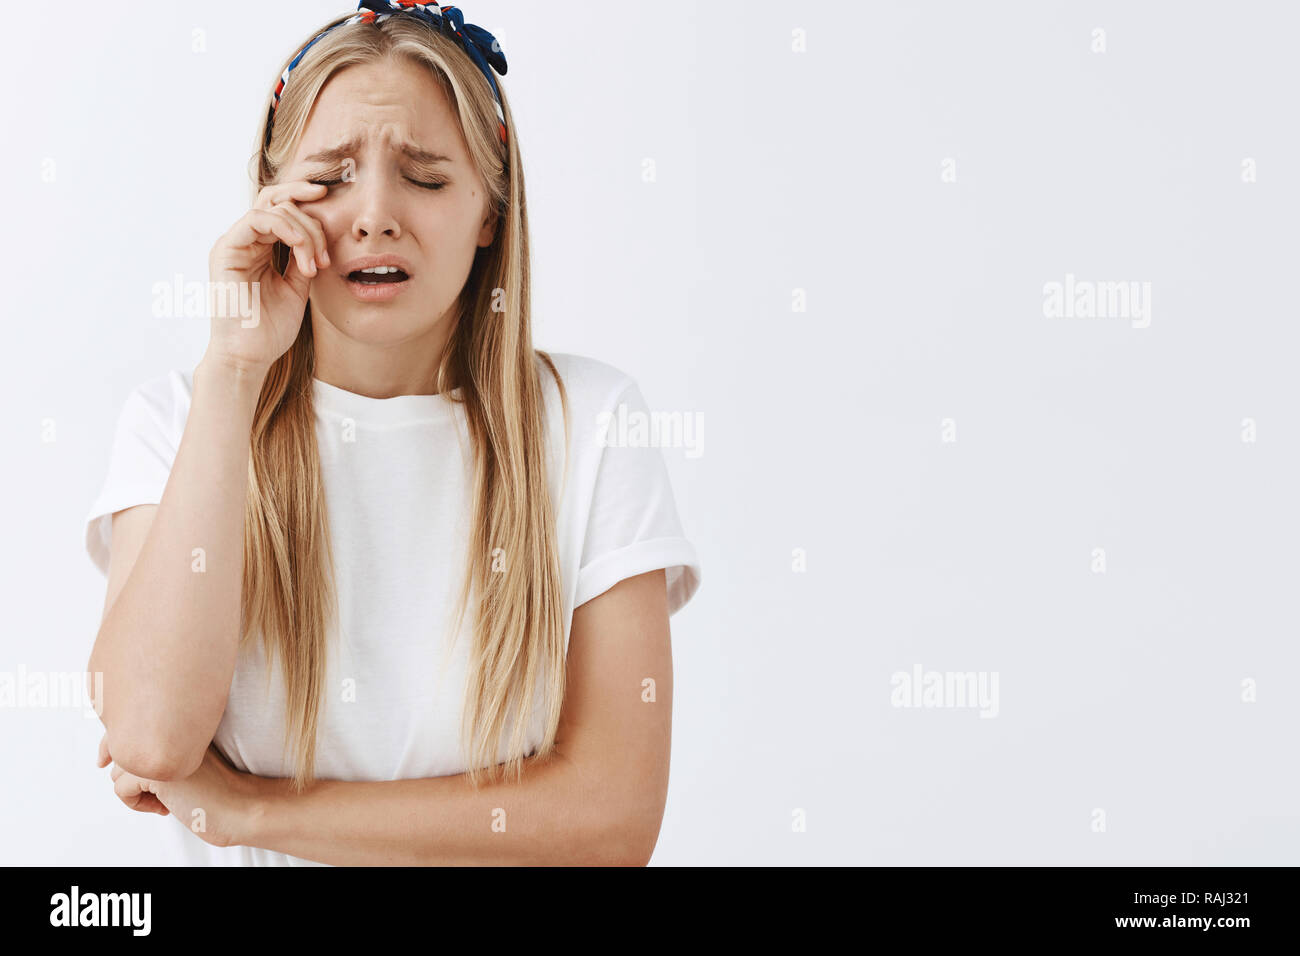 Crying her heart out, he does not worth your tears honey. Sad insecure and timid young girl with blond hair, frowning, whiping teardrop from eye while being upset and unhappy over grey wall - Stock Image